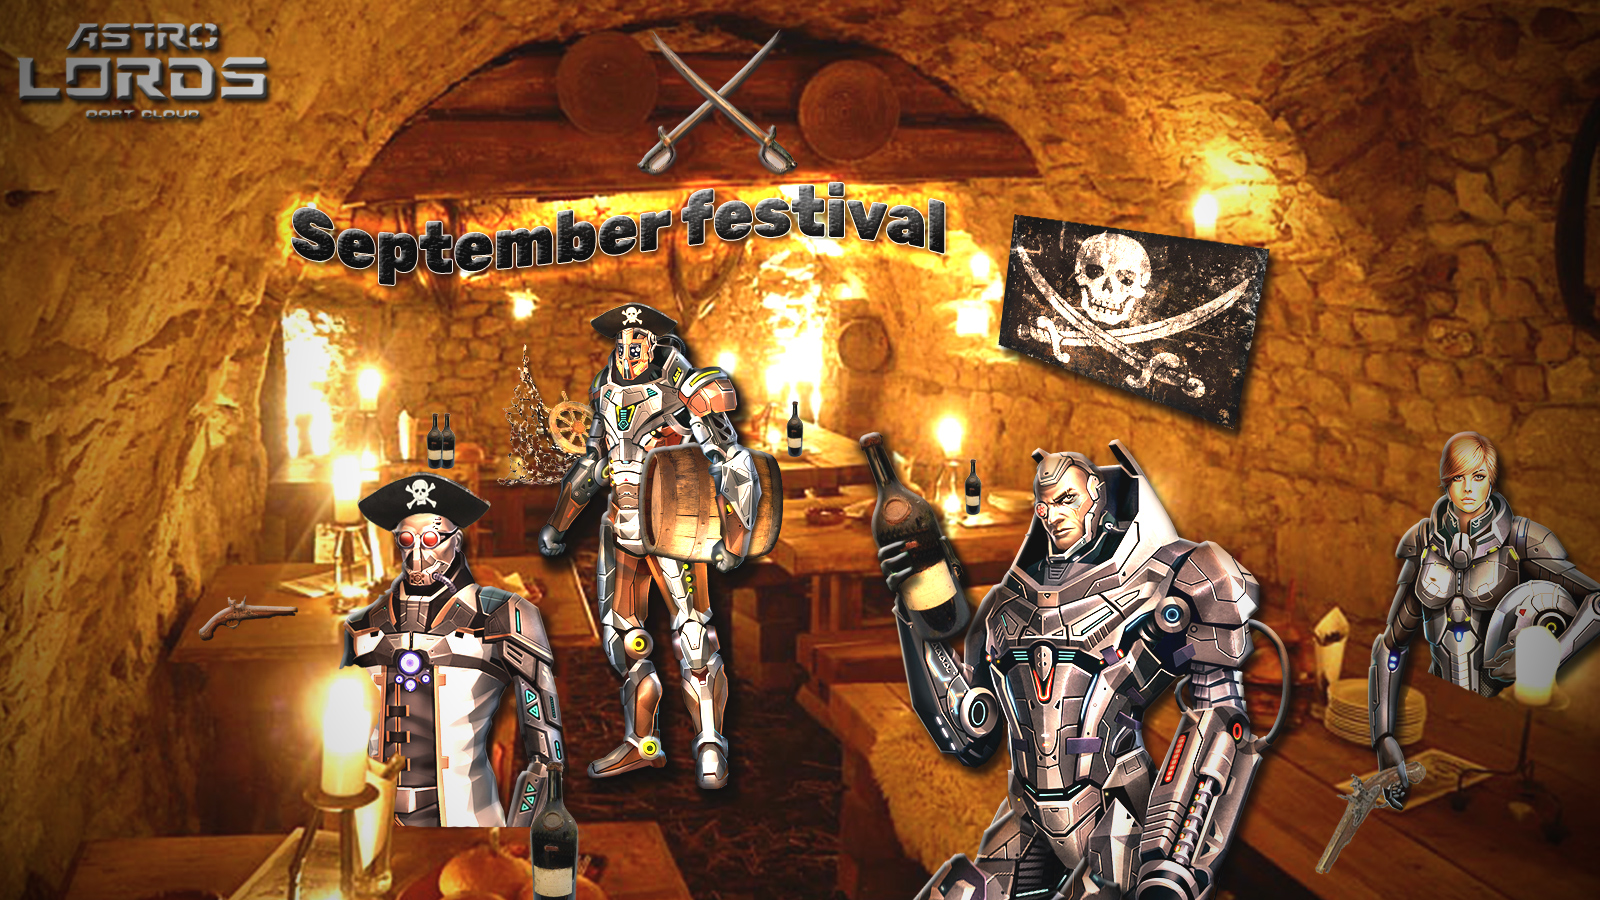 game astrolords online indie unity pirate space mmo september festival oktoberfest